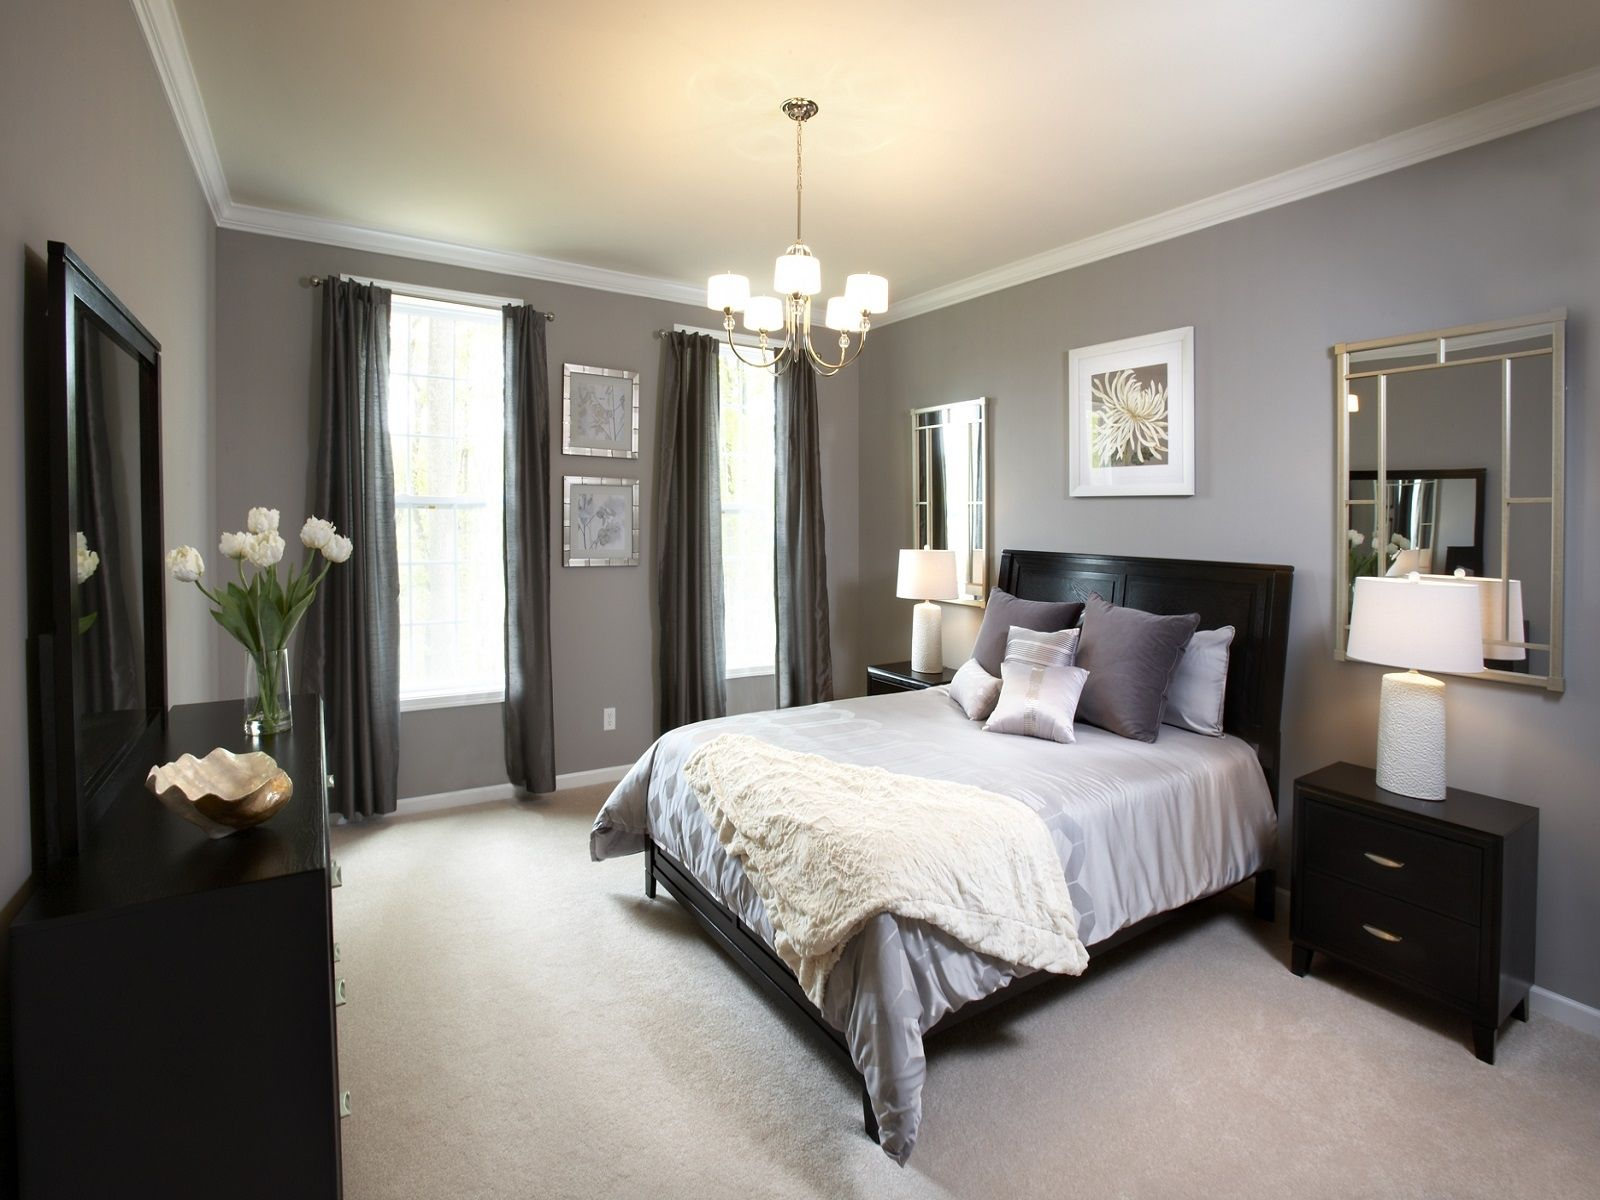 Paint colors for adult bedrooms - Brilliant Decorating Bedroom Ideas With Black Bed And Dark Dresser Near Grey Painted Wall